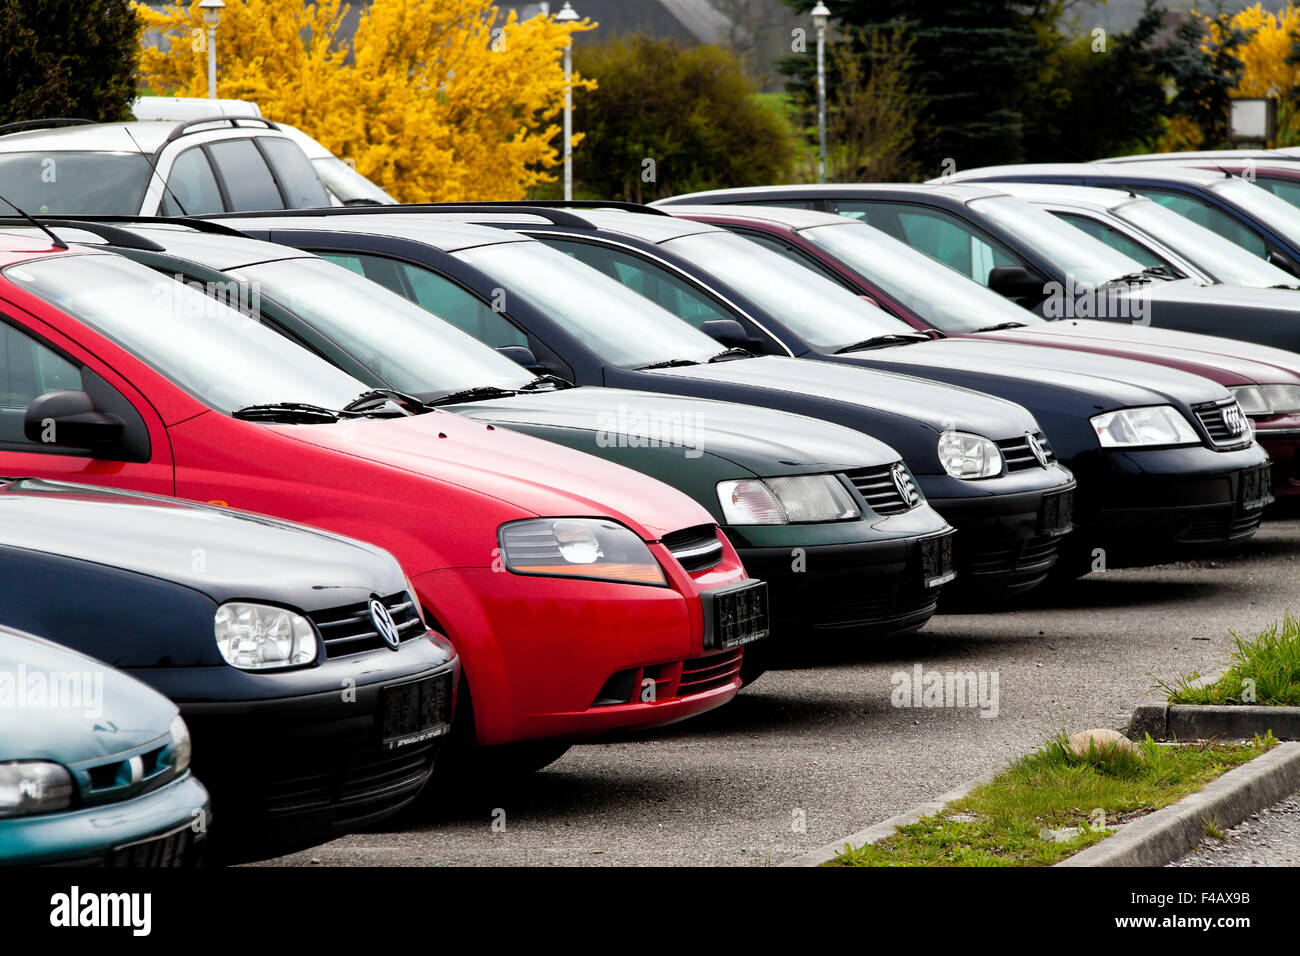 Used cars from car dealers. Used car trade Stock Photo, Royalty ...